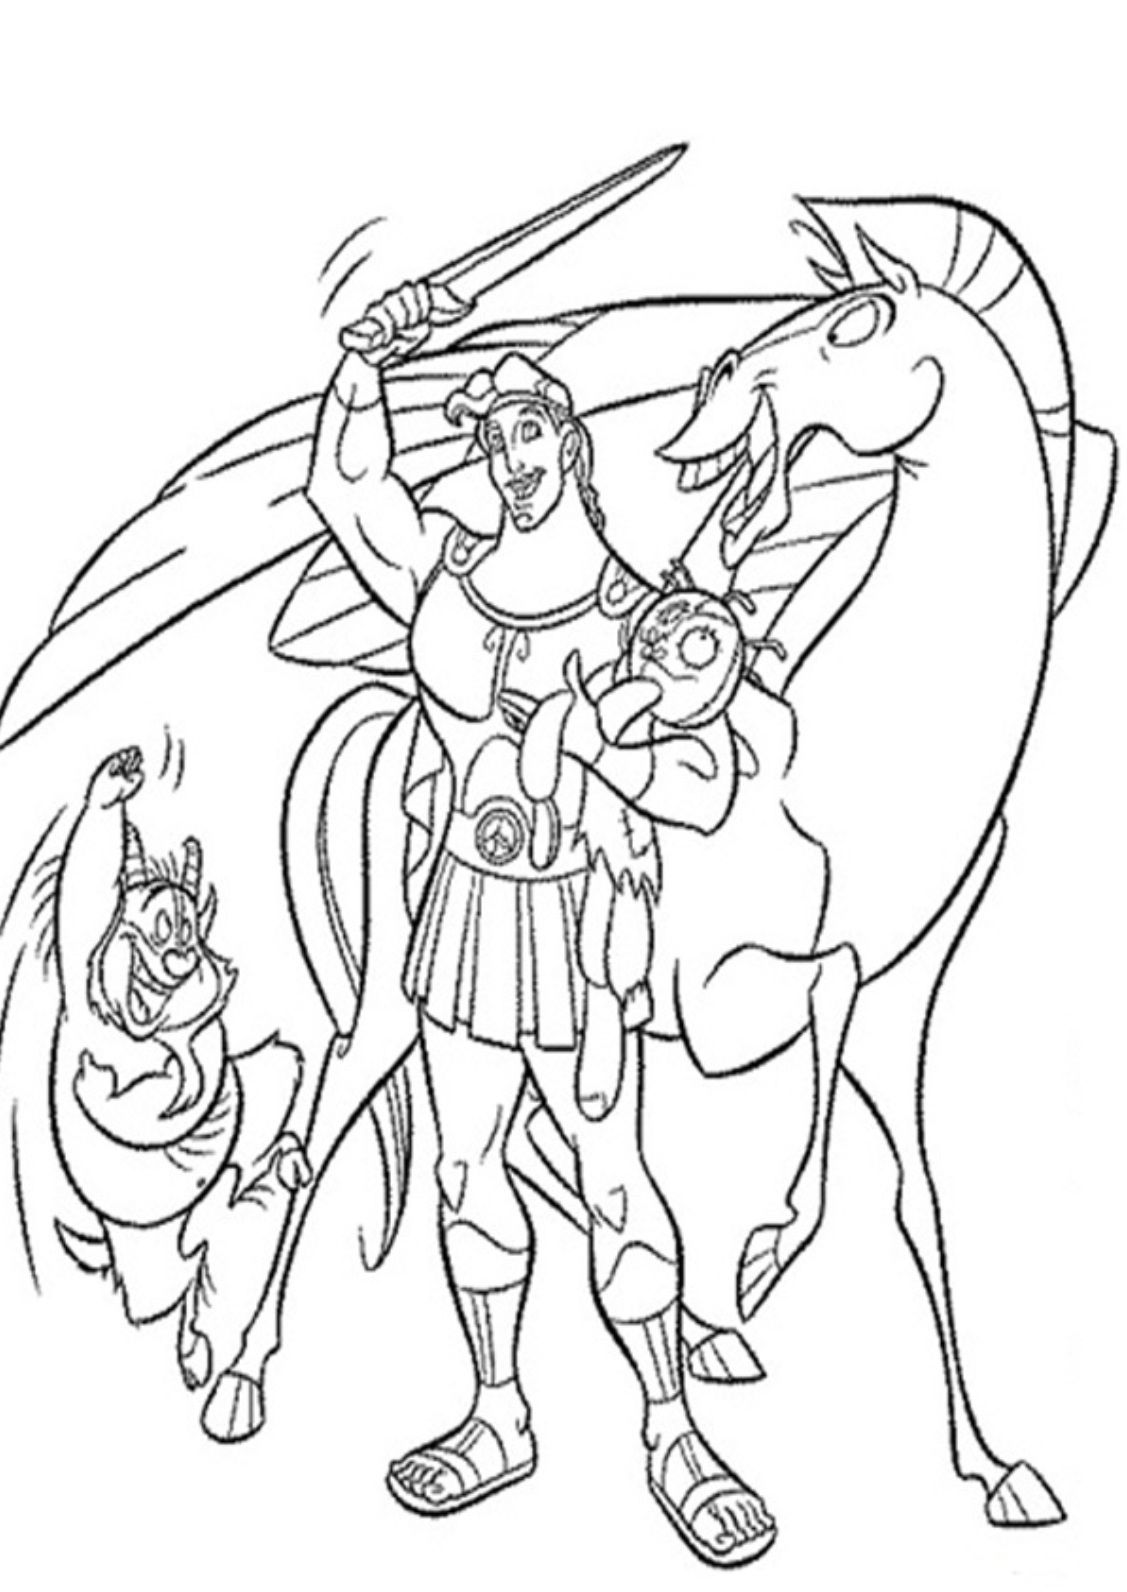 Hercules Win Coloring Pages For Kids d6i  Printable ...